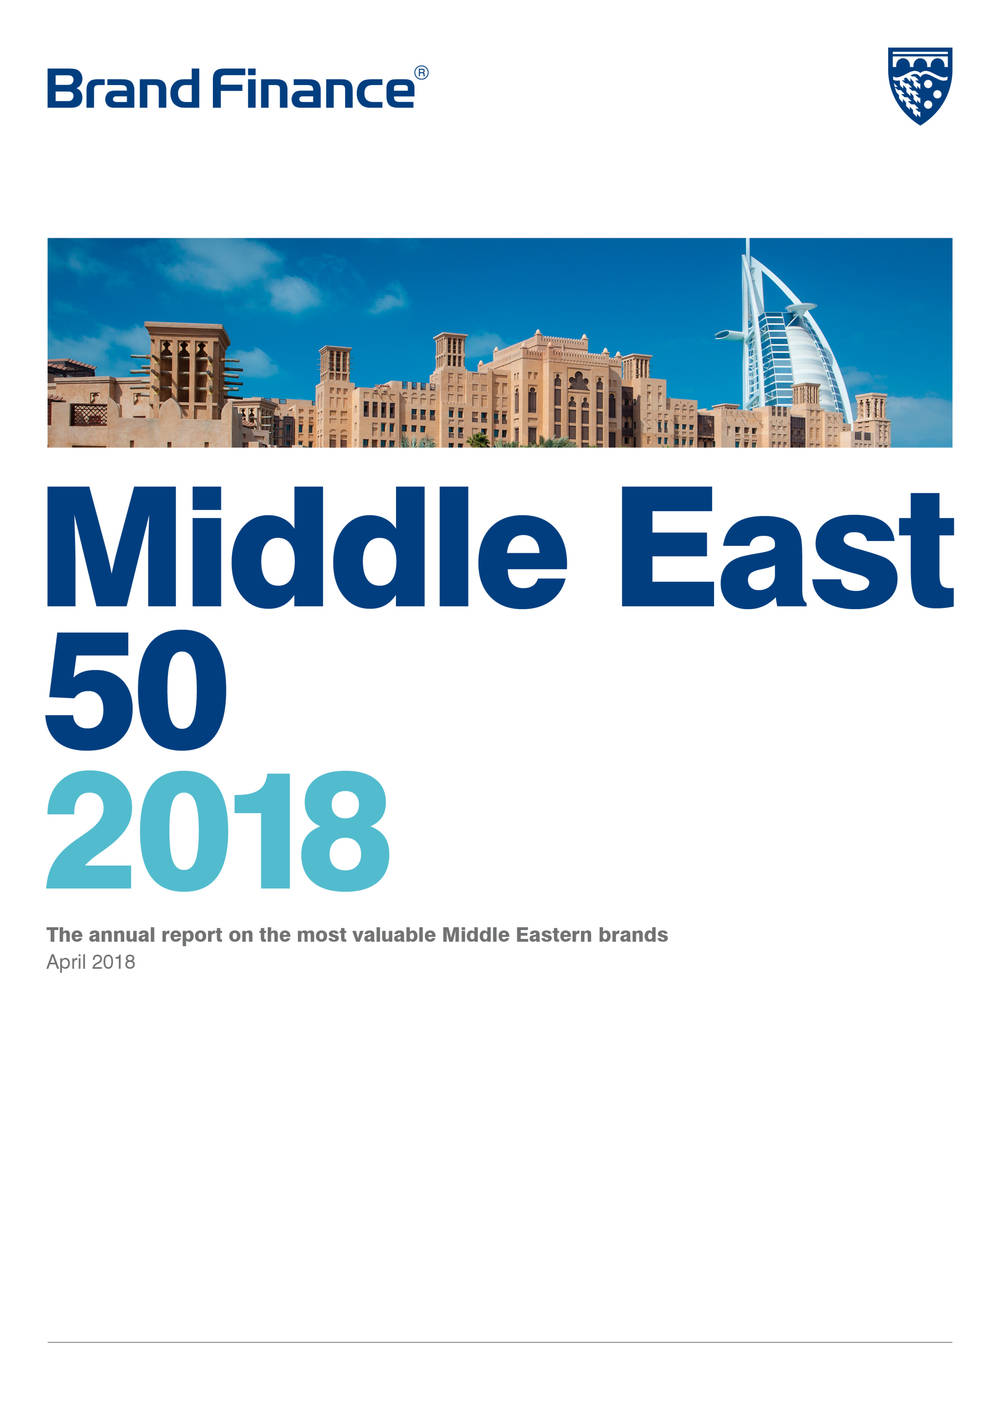 Brand Finance Middle East 50 2018